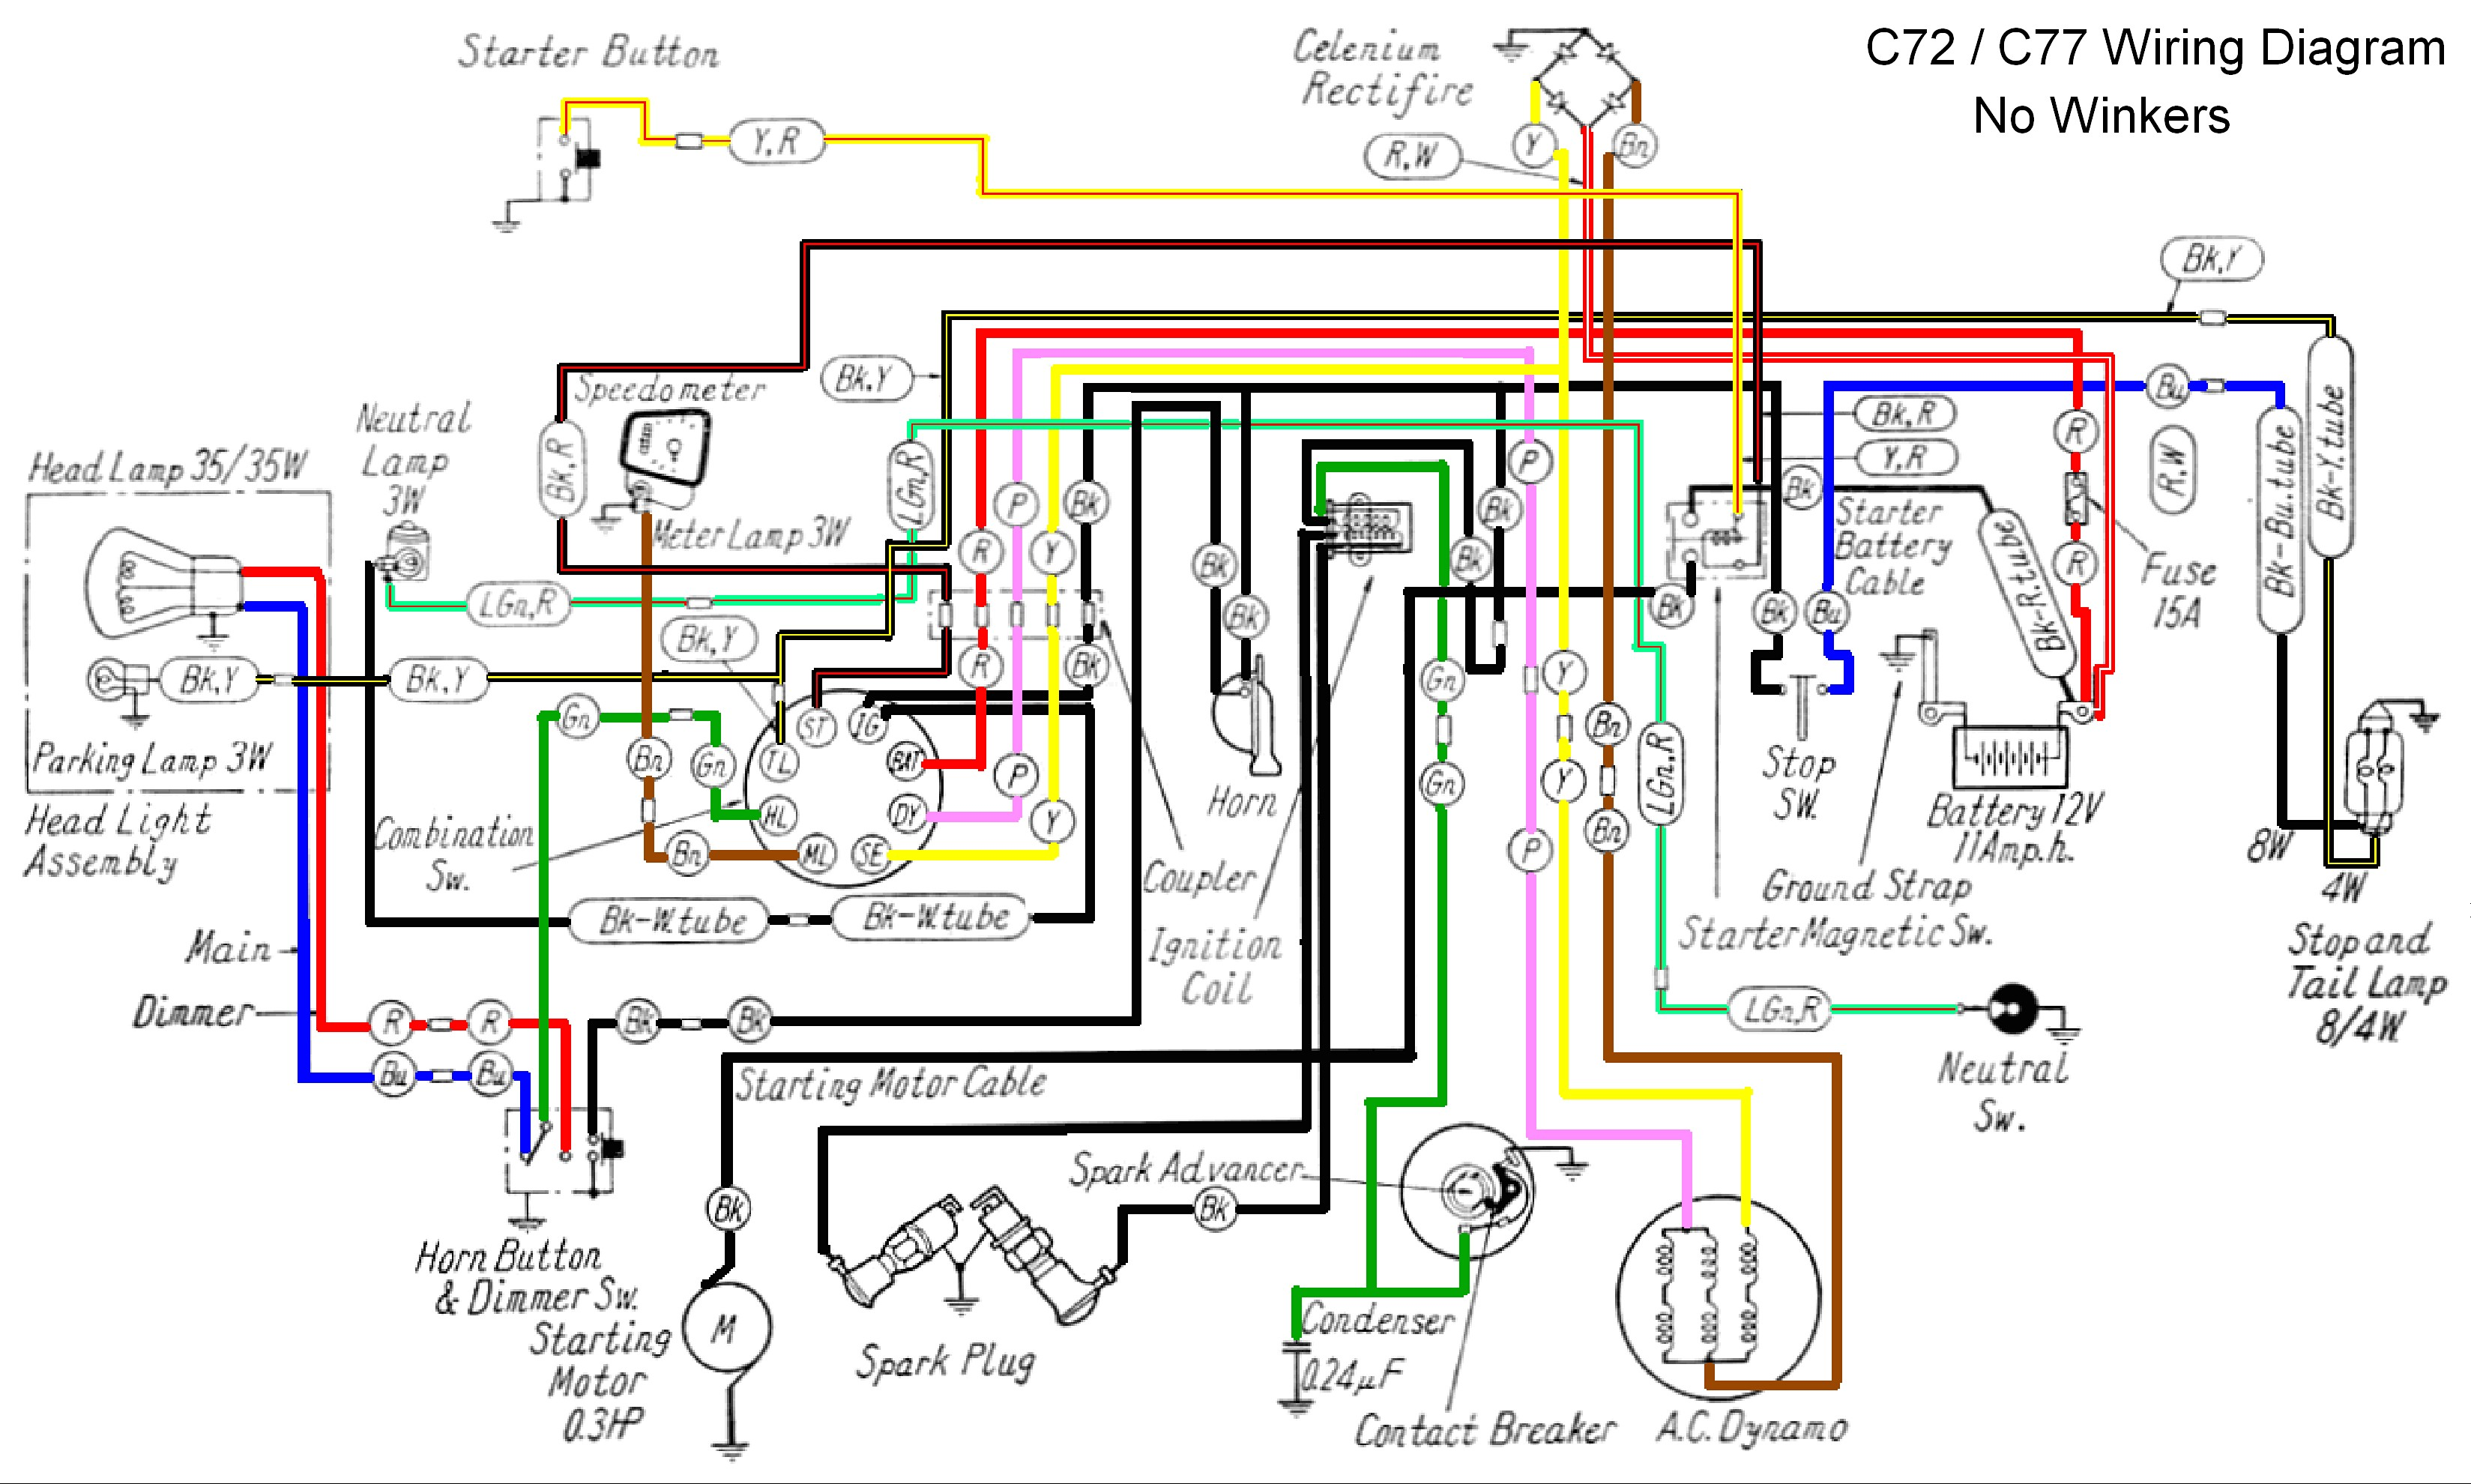 2015 Harley Wiring Diagram Schematic Diagrams 2001 Dyna Sportster Explained Davidson Schematics And